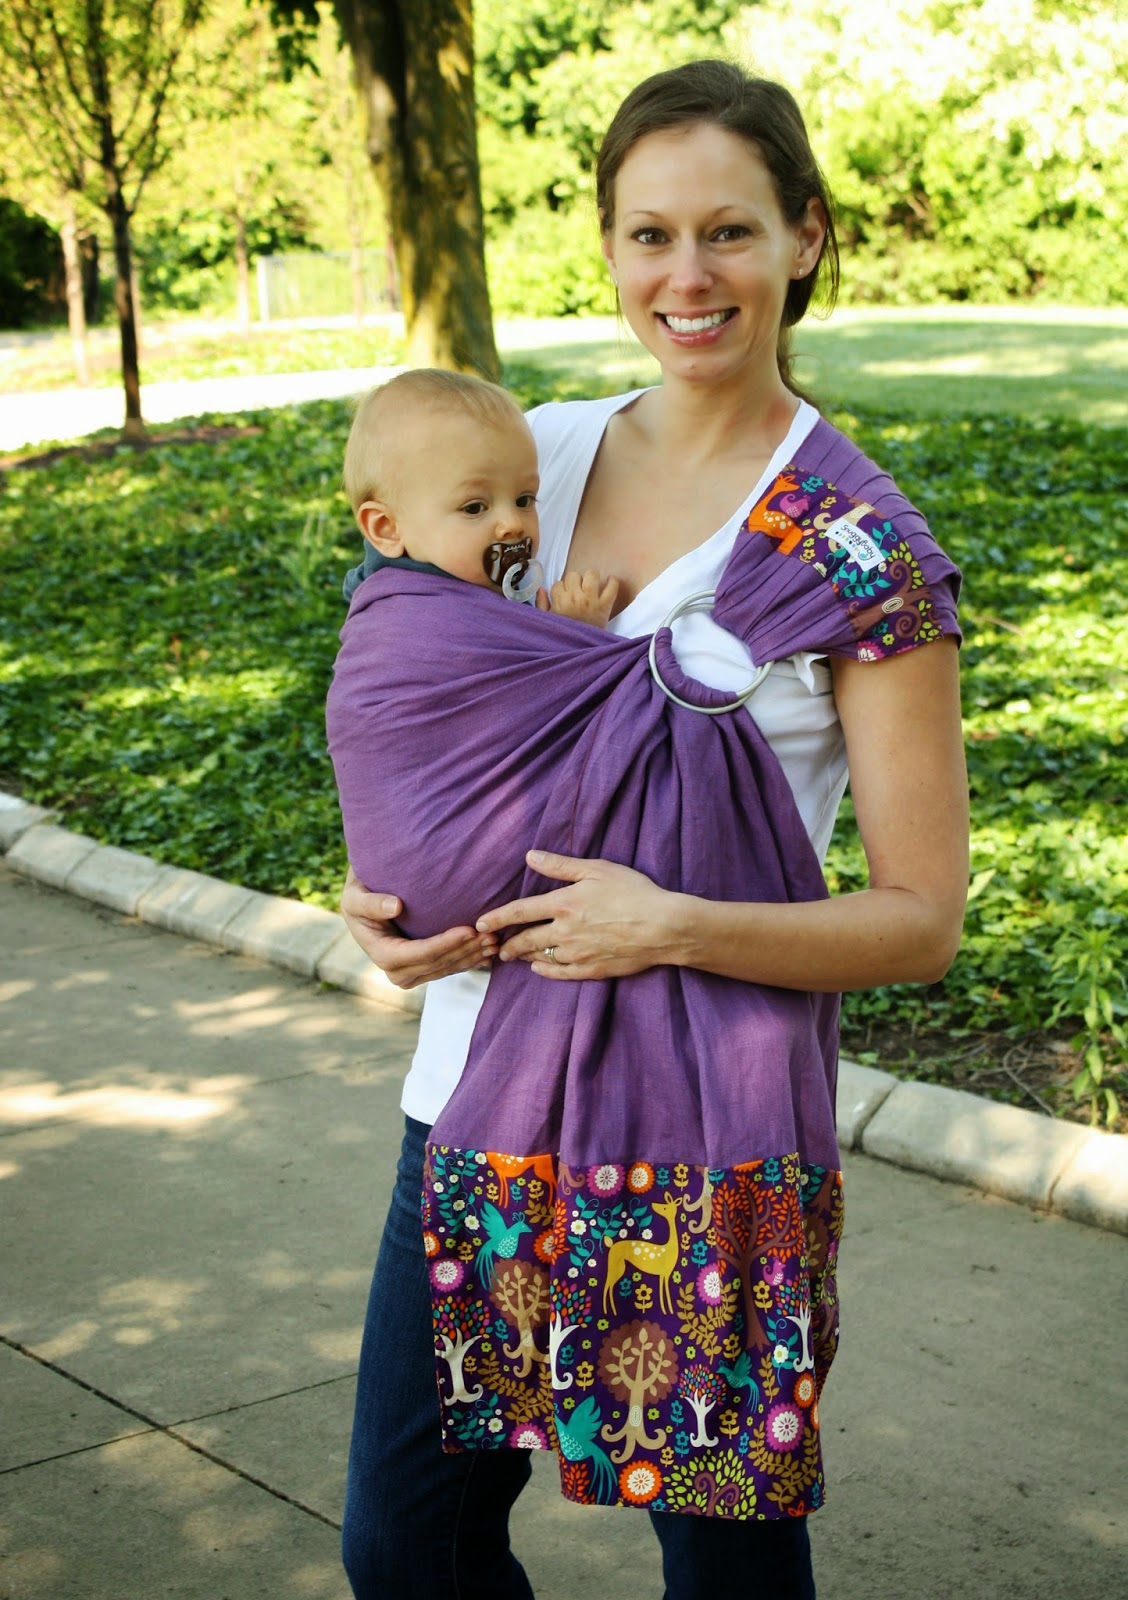 Snuggy Baby Fantasy Forest Linen Banded Ring Sling